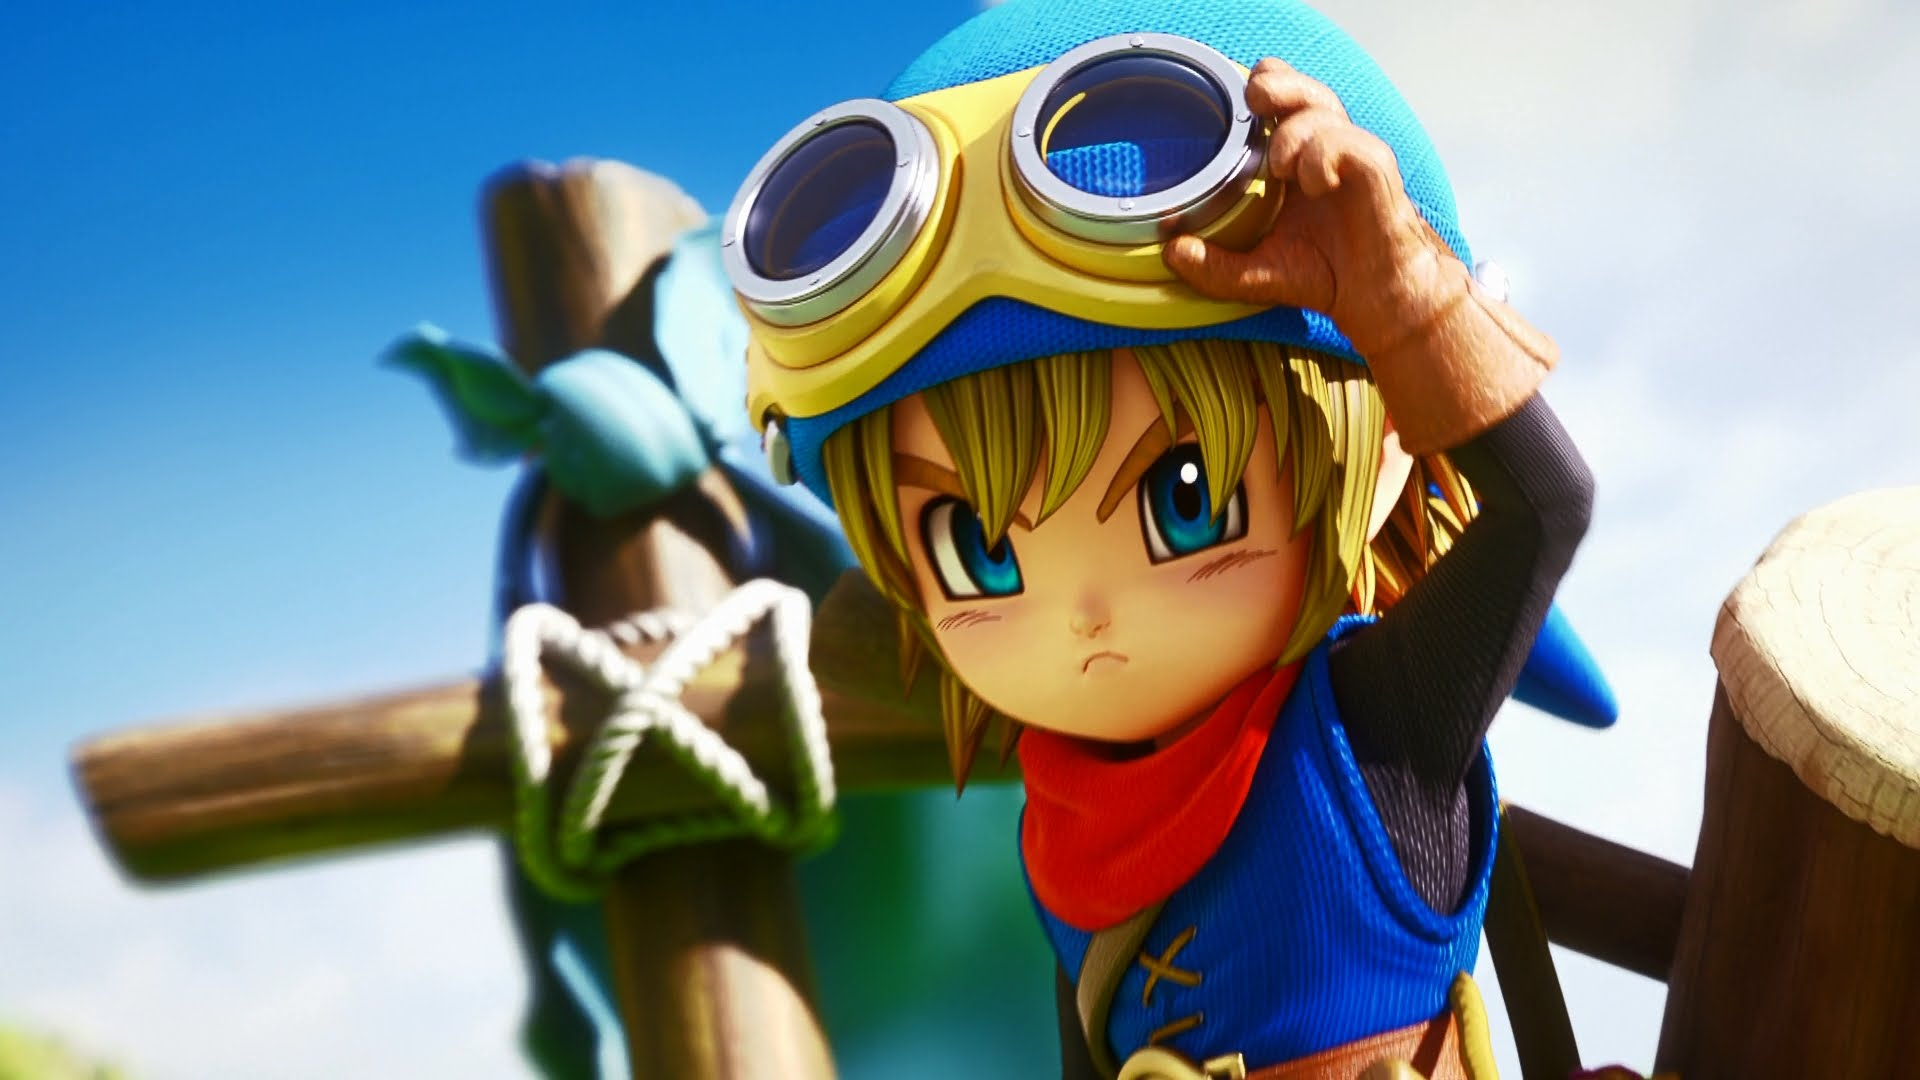 PS4/PS3/PS Vita Exclusive Dragon Quest Builders Getting Demo for PS4